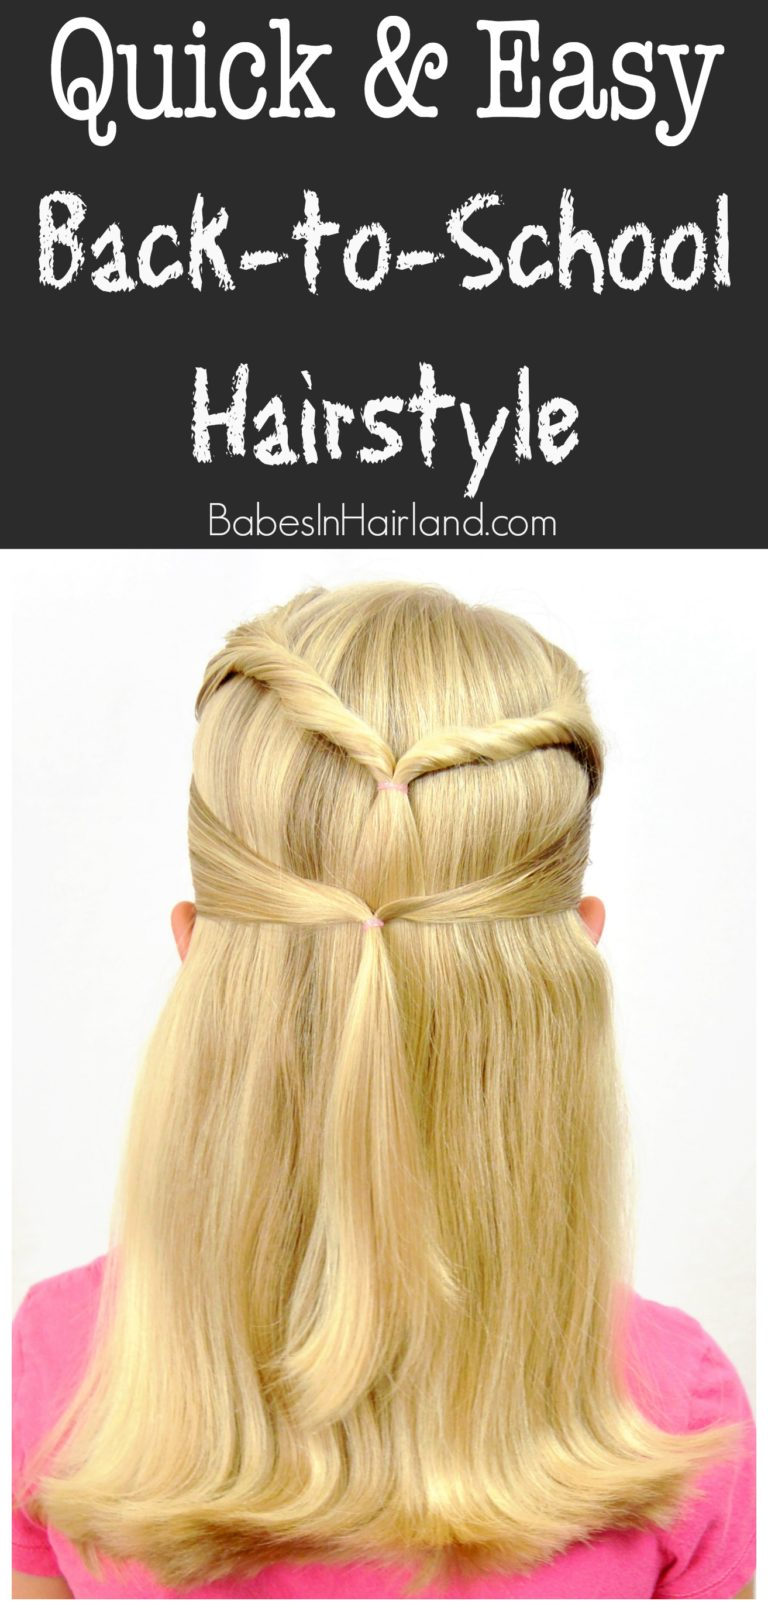 Quick & Easy Back to School Hairstyle Babes In Hairland